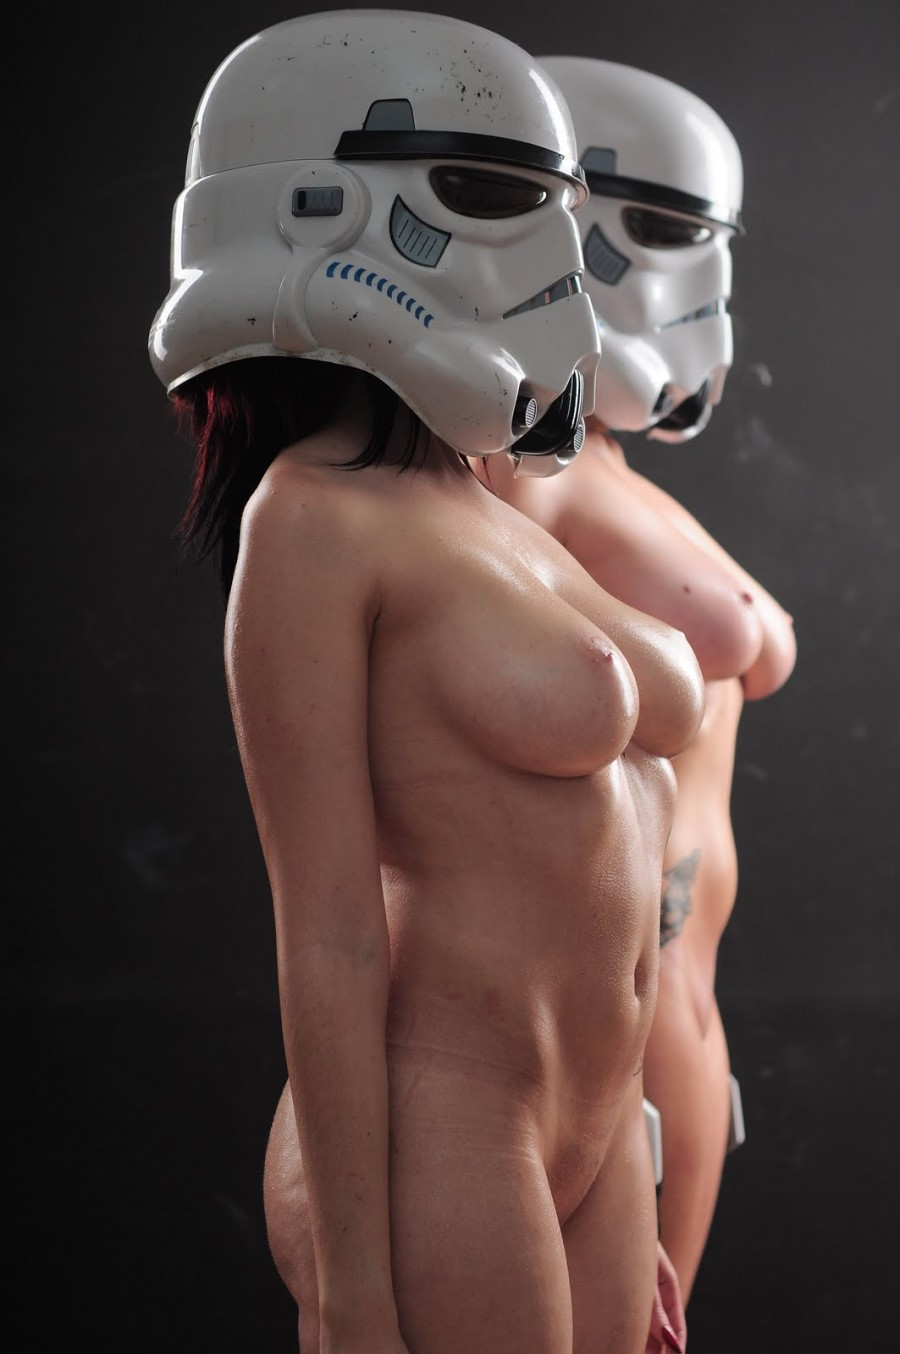 Cosplay naked star wars exposed picture